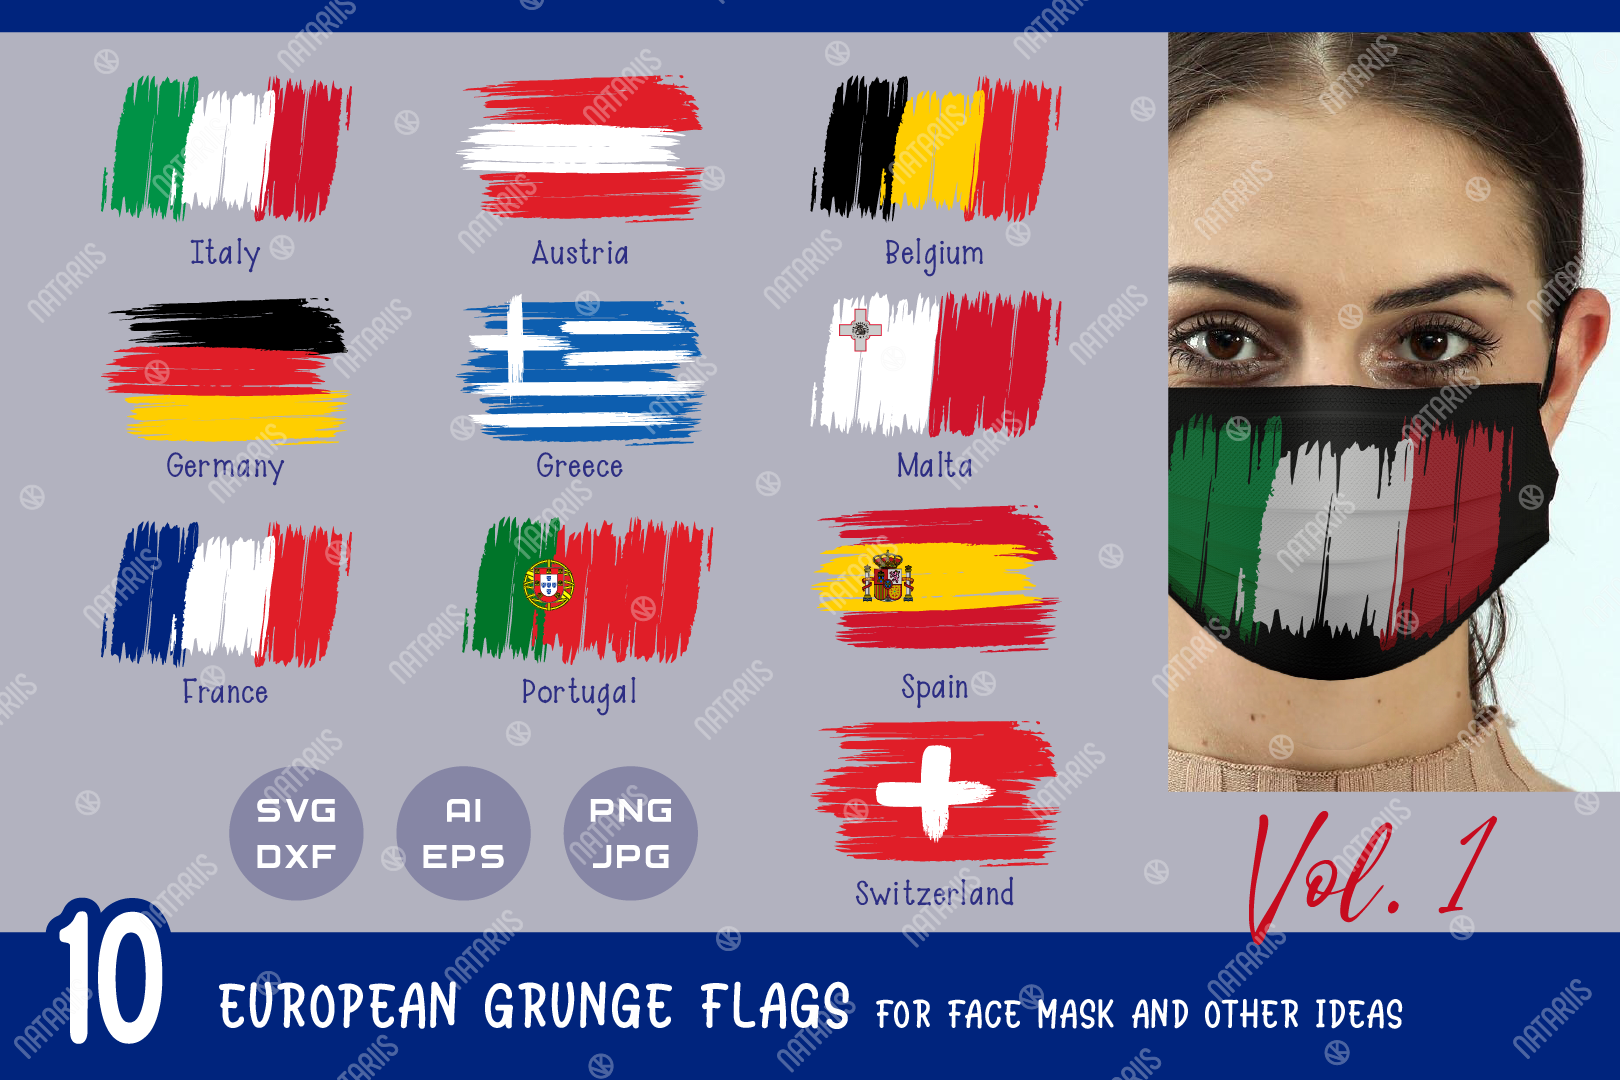 10 European Grunge Flags For Face Mask Graphic By Natariis